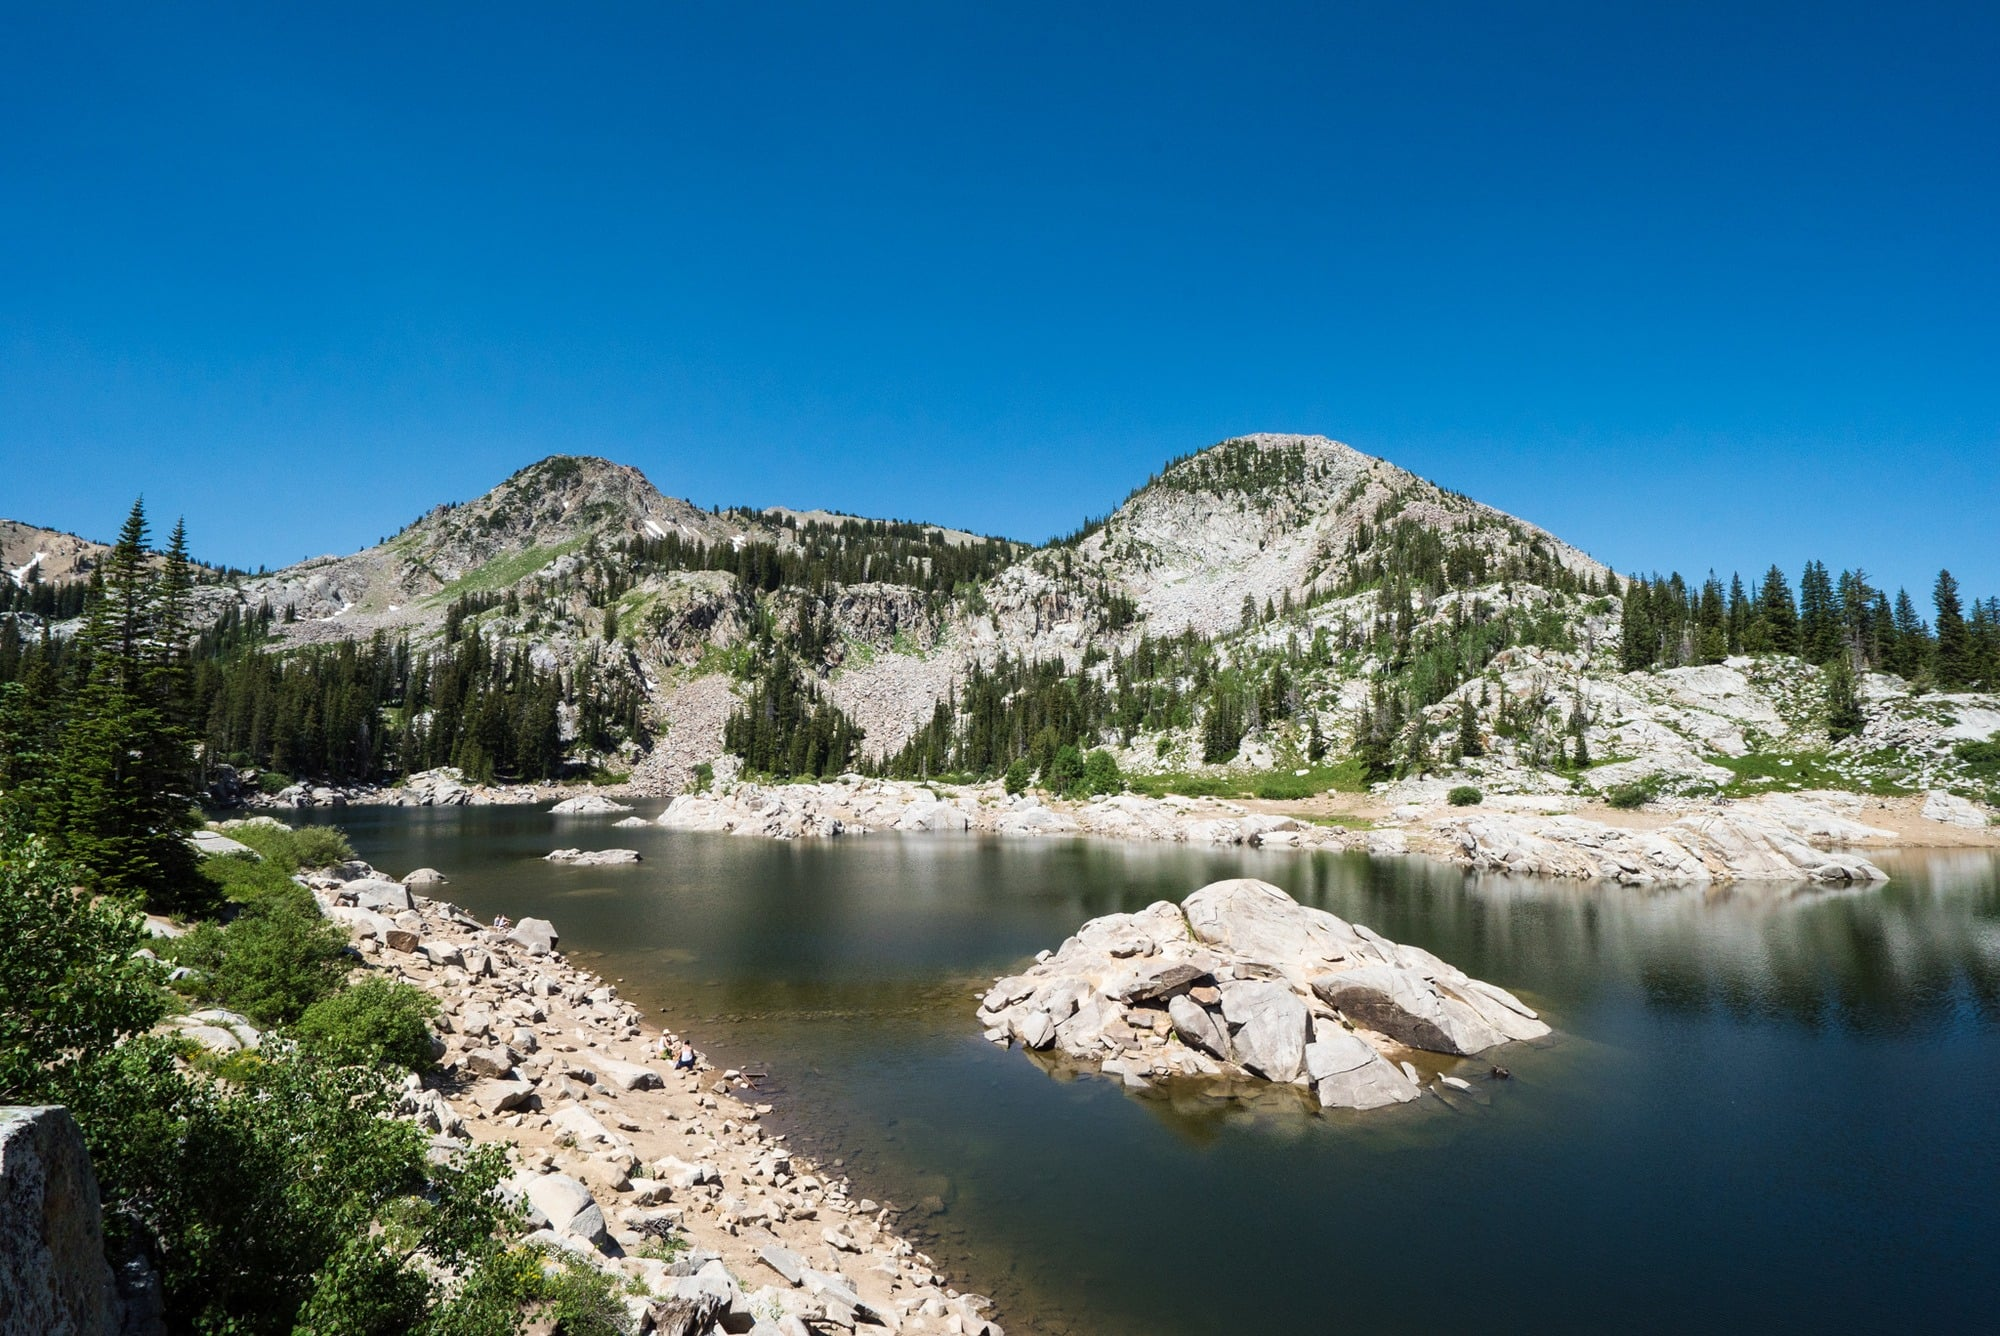 Get trail descriptions for the 5 most popular alpine lake hikes near Salt Lake City. From crystal clear water to blooming wildflowers to sweeping city views, these won't disappoint.